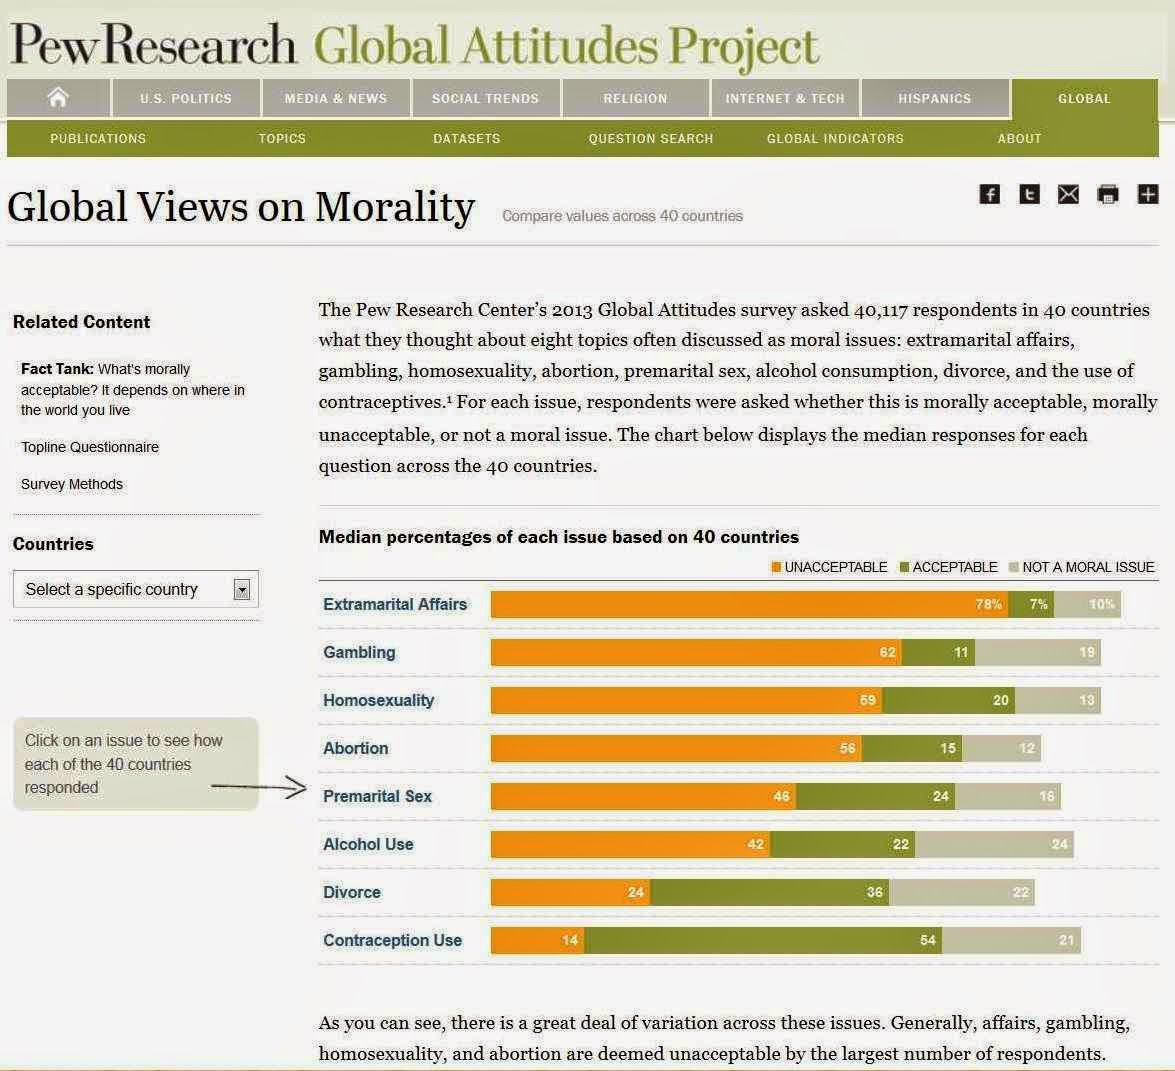 Pew Research Center's 2013 Global Attitudes